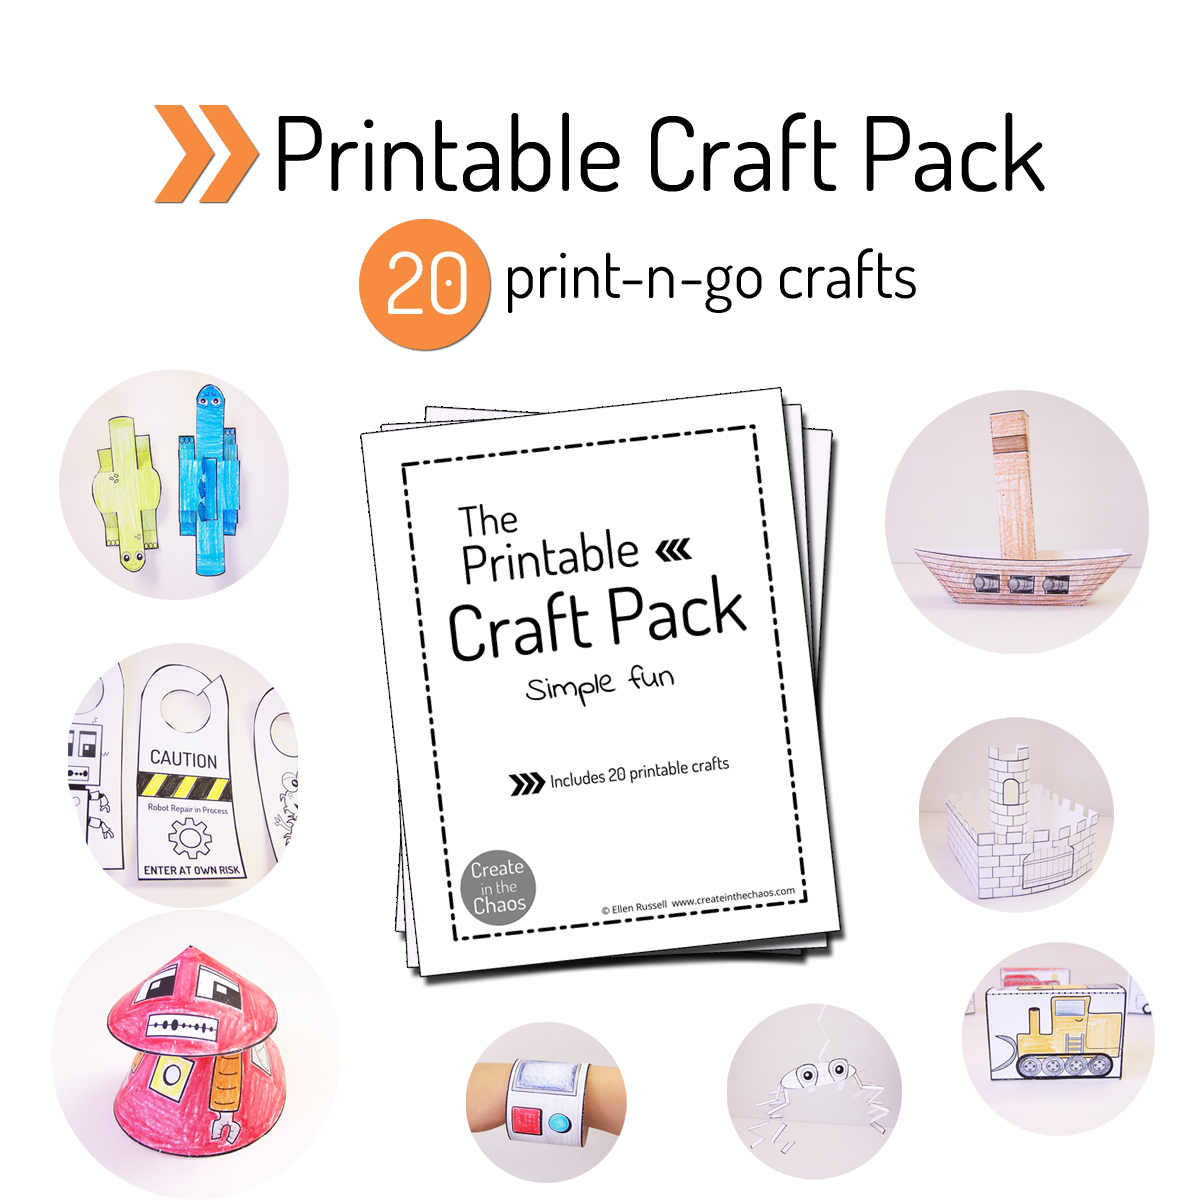 Printable Craft Pack